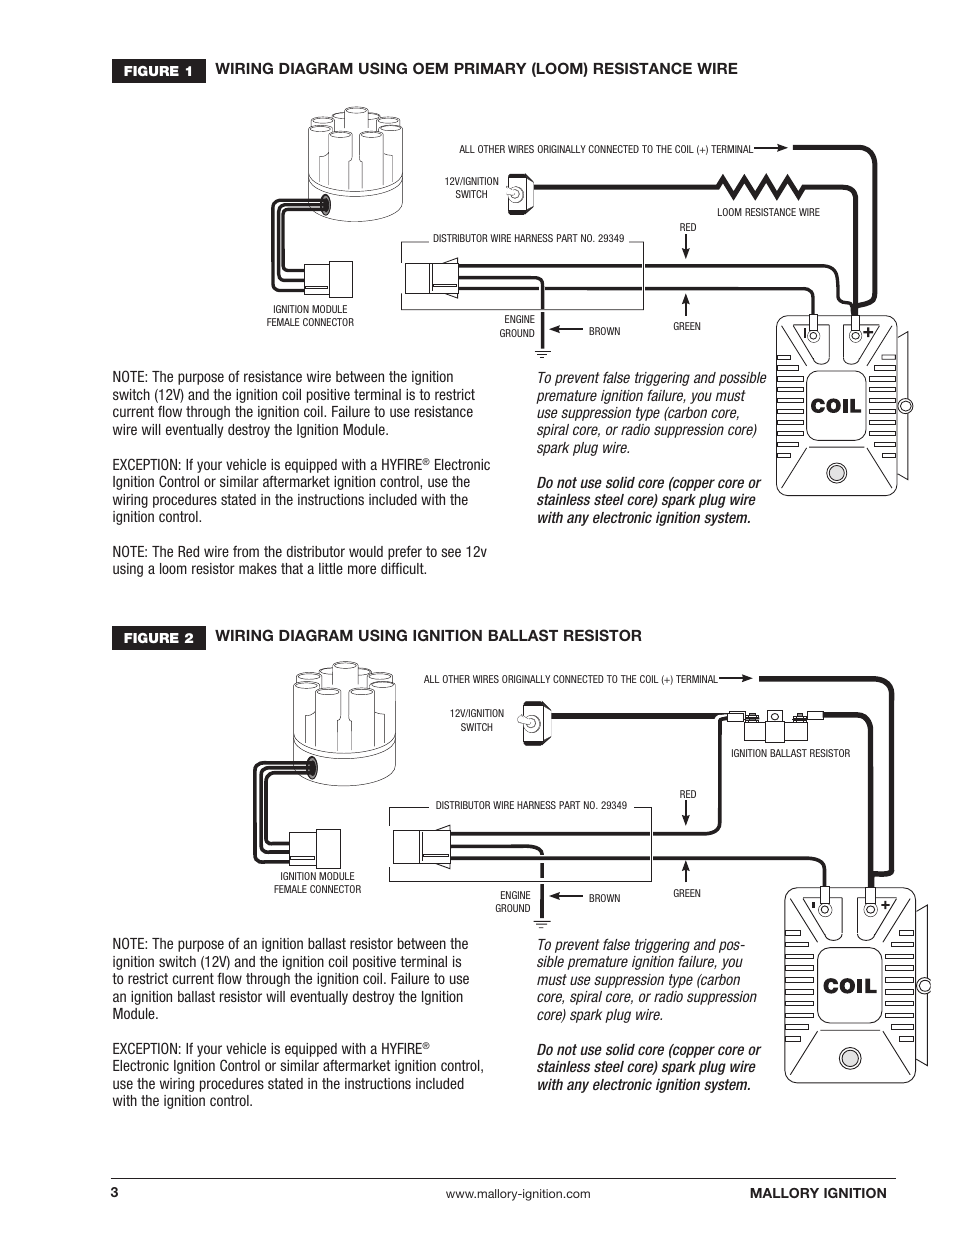 medium resolution of mallory ignition mallory magnetic breakerless distributor 609 user manual page 3 4